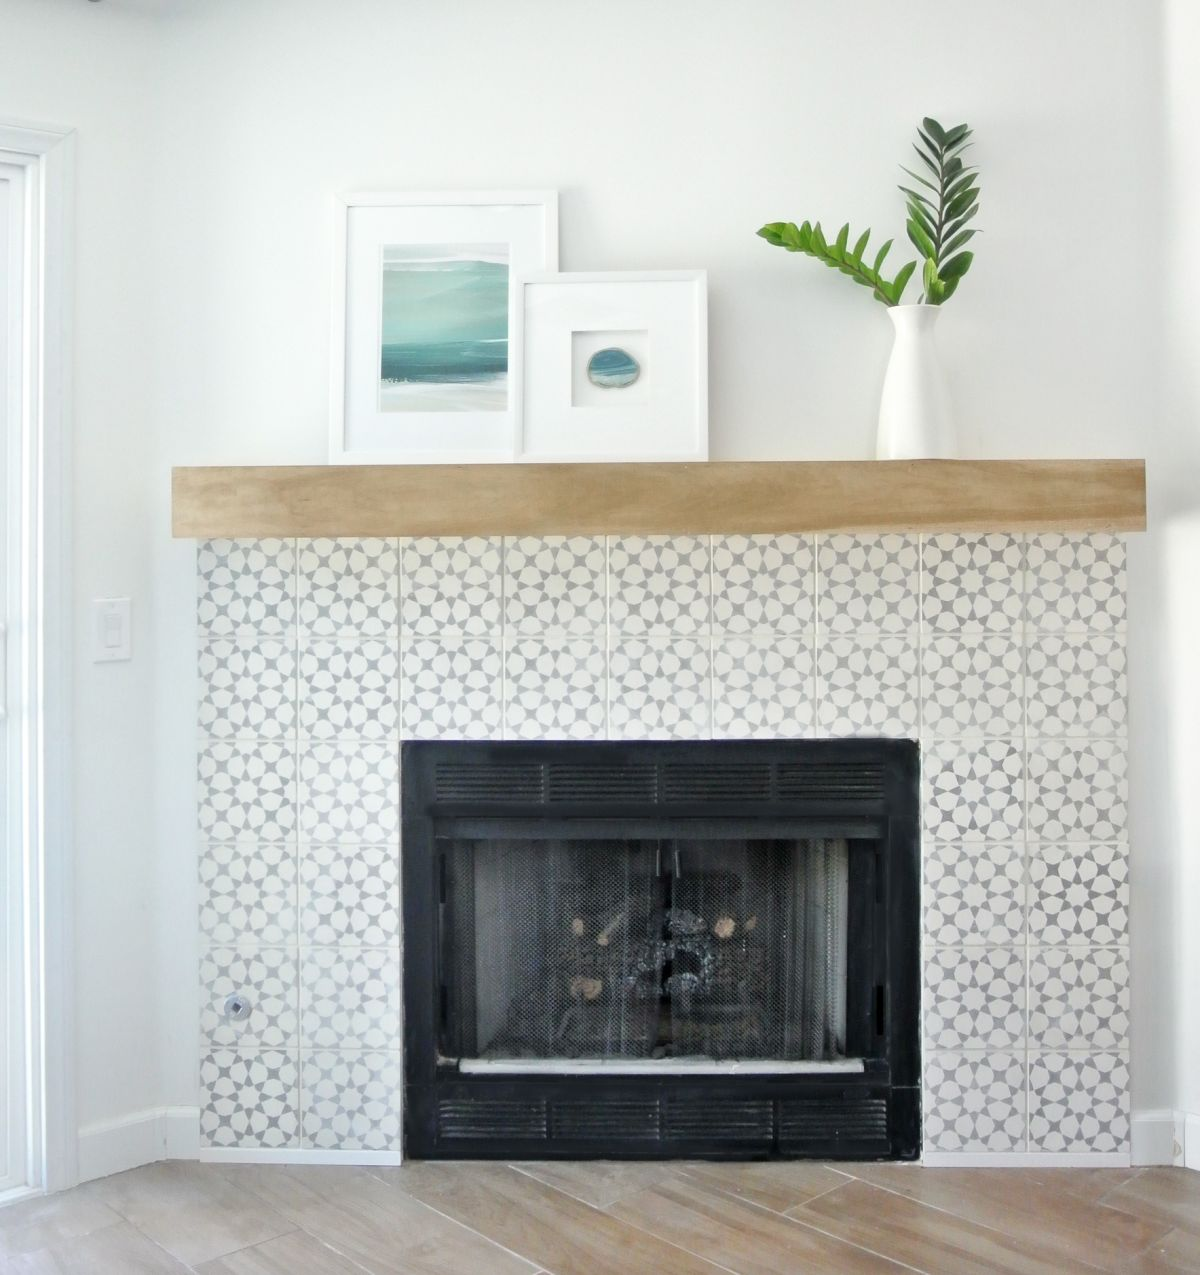 tips diy and decorate your fireplace mantel shelf decorating the with framed art floating over view gallery kitchen unit storage hairpin homebase toy hanging wall hooks cherry